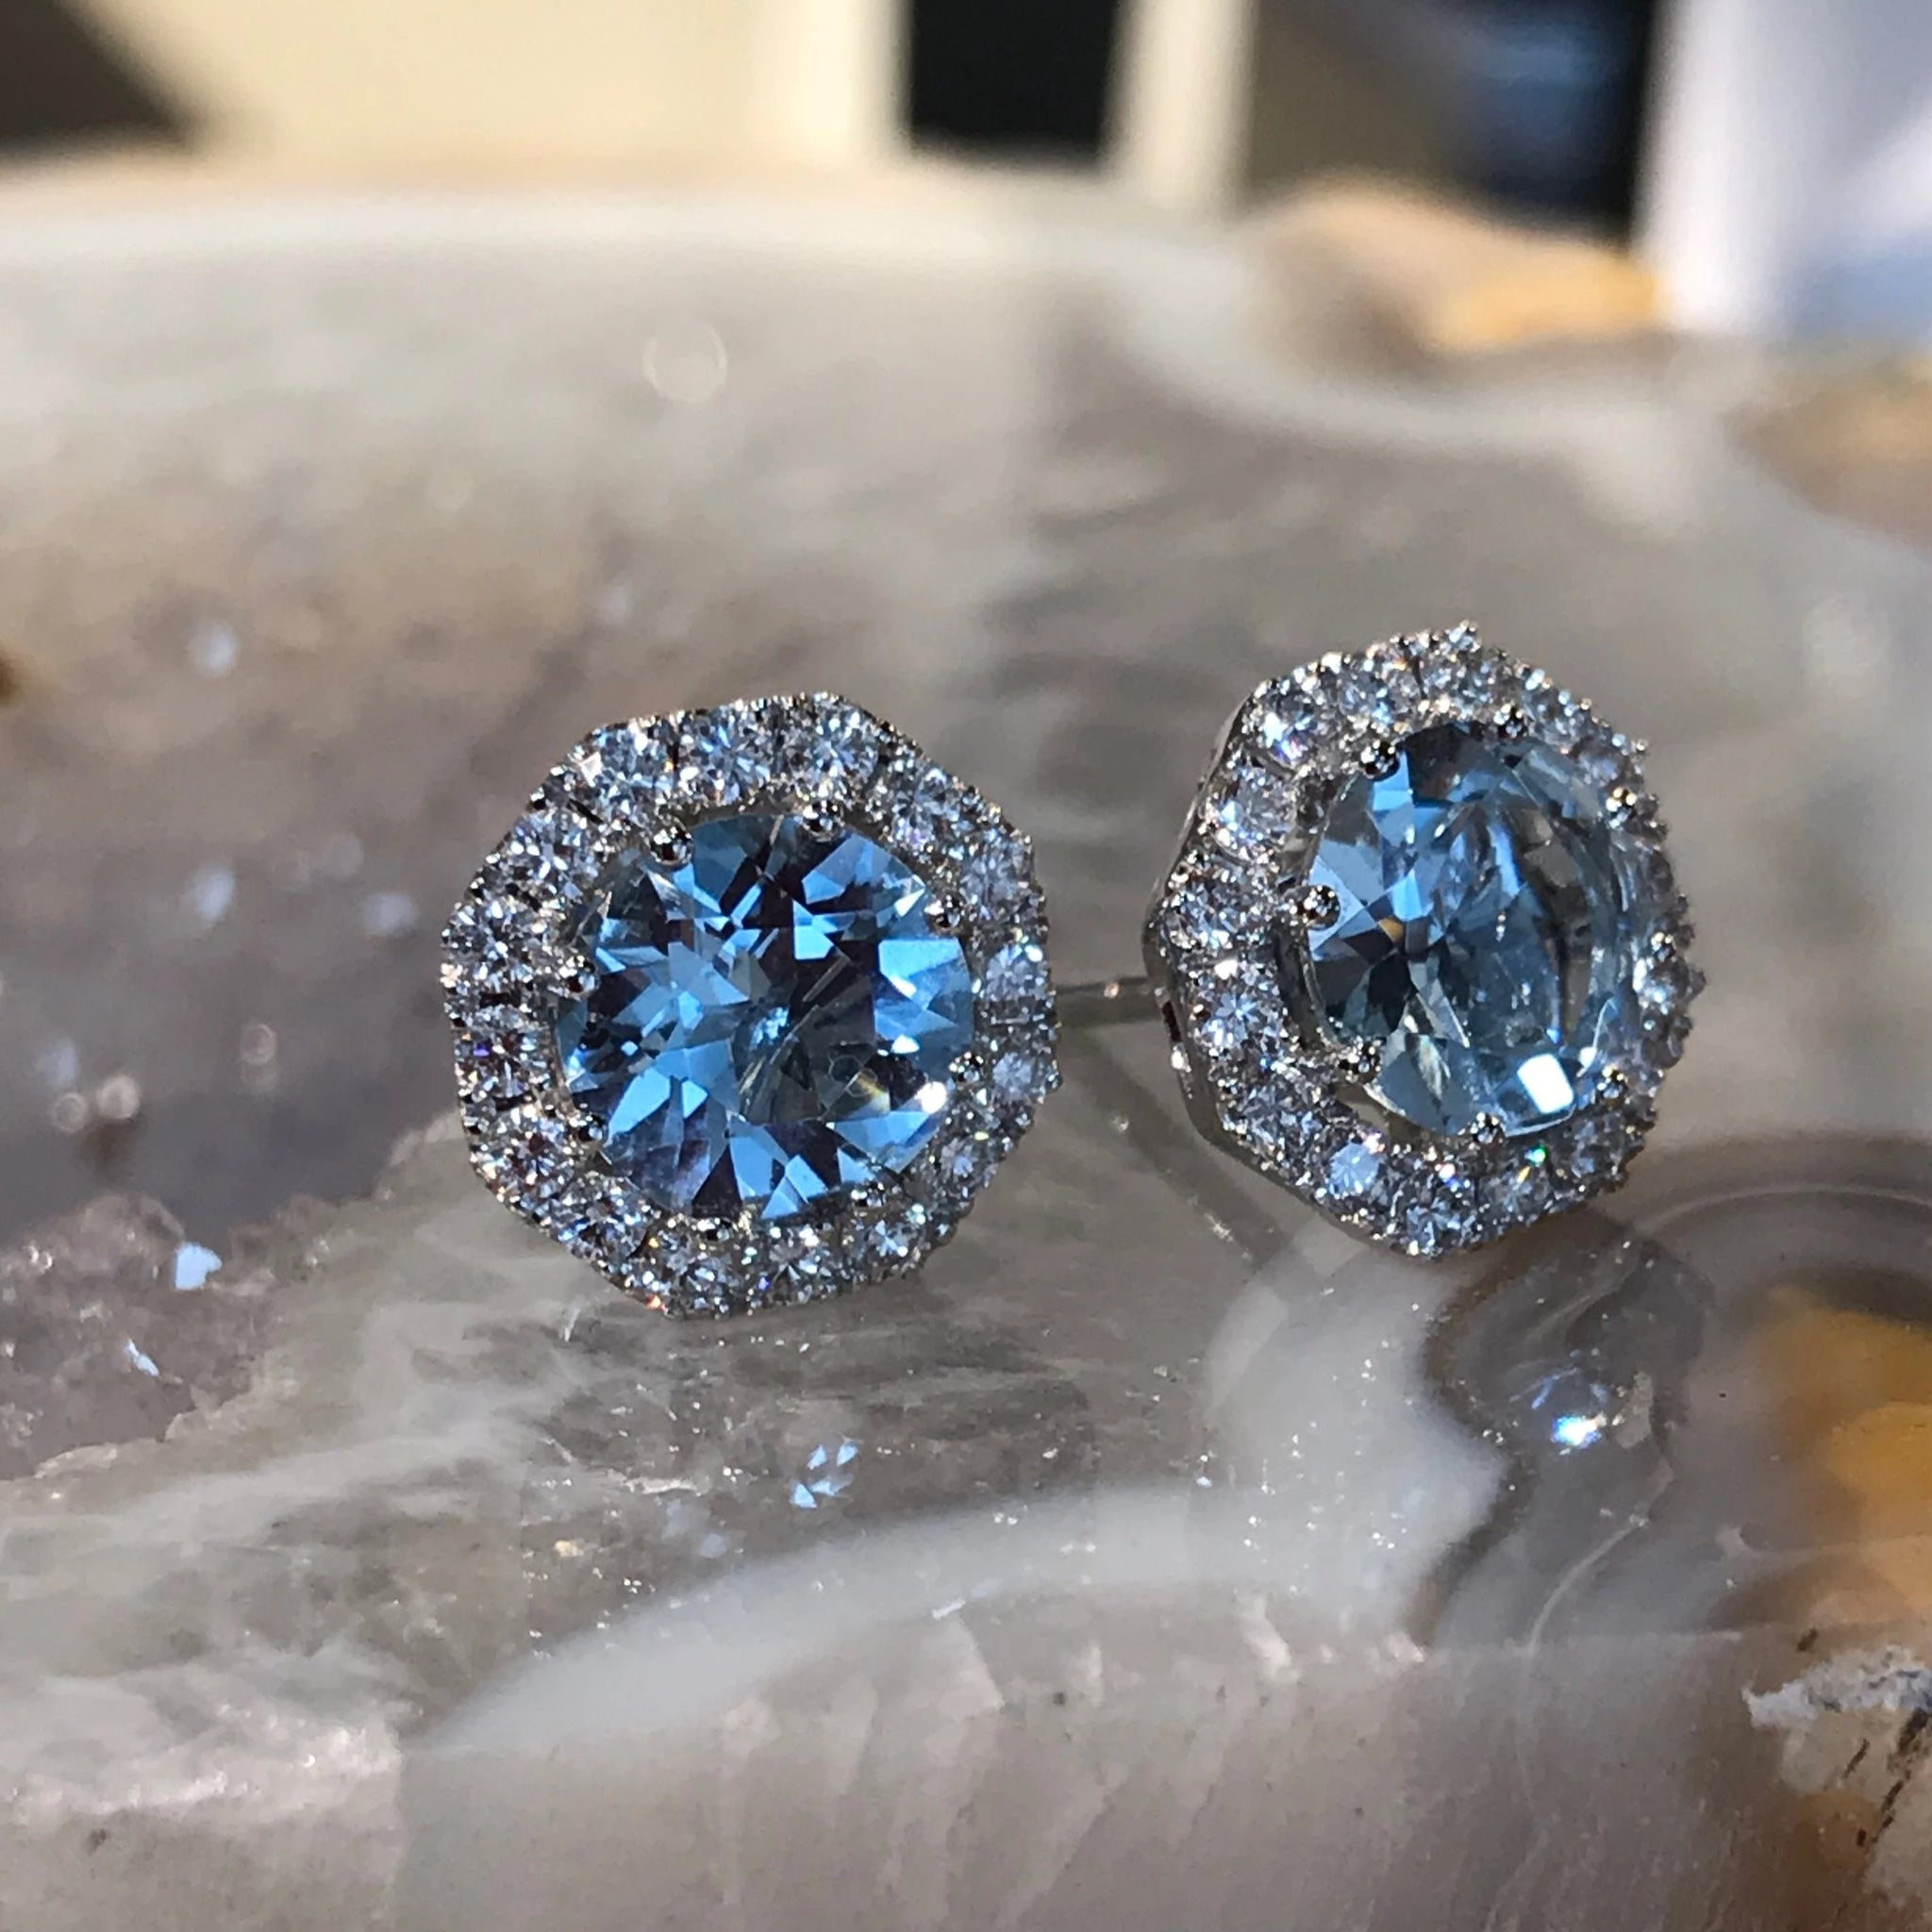 Aqaumarine Halo Earrings